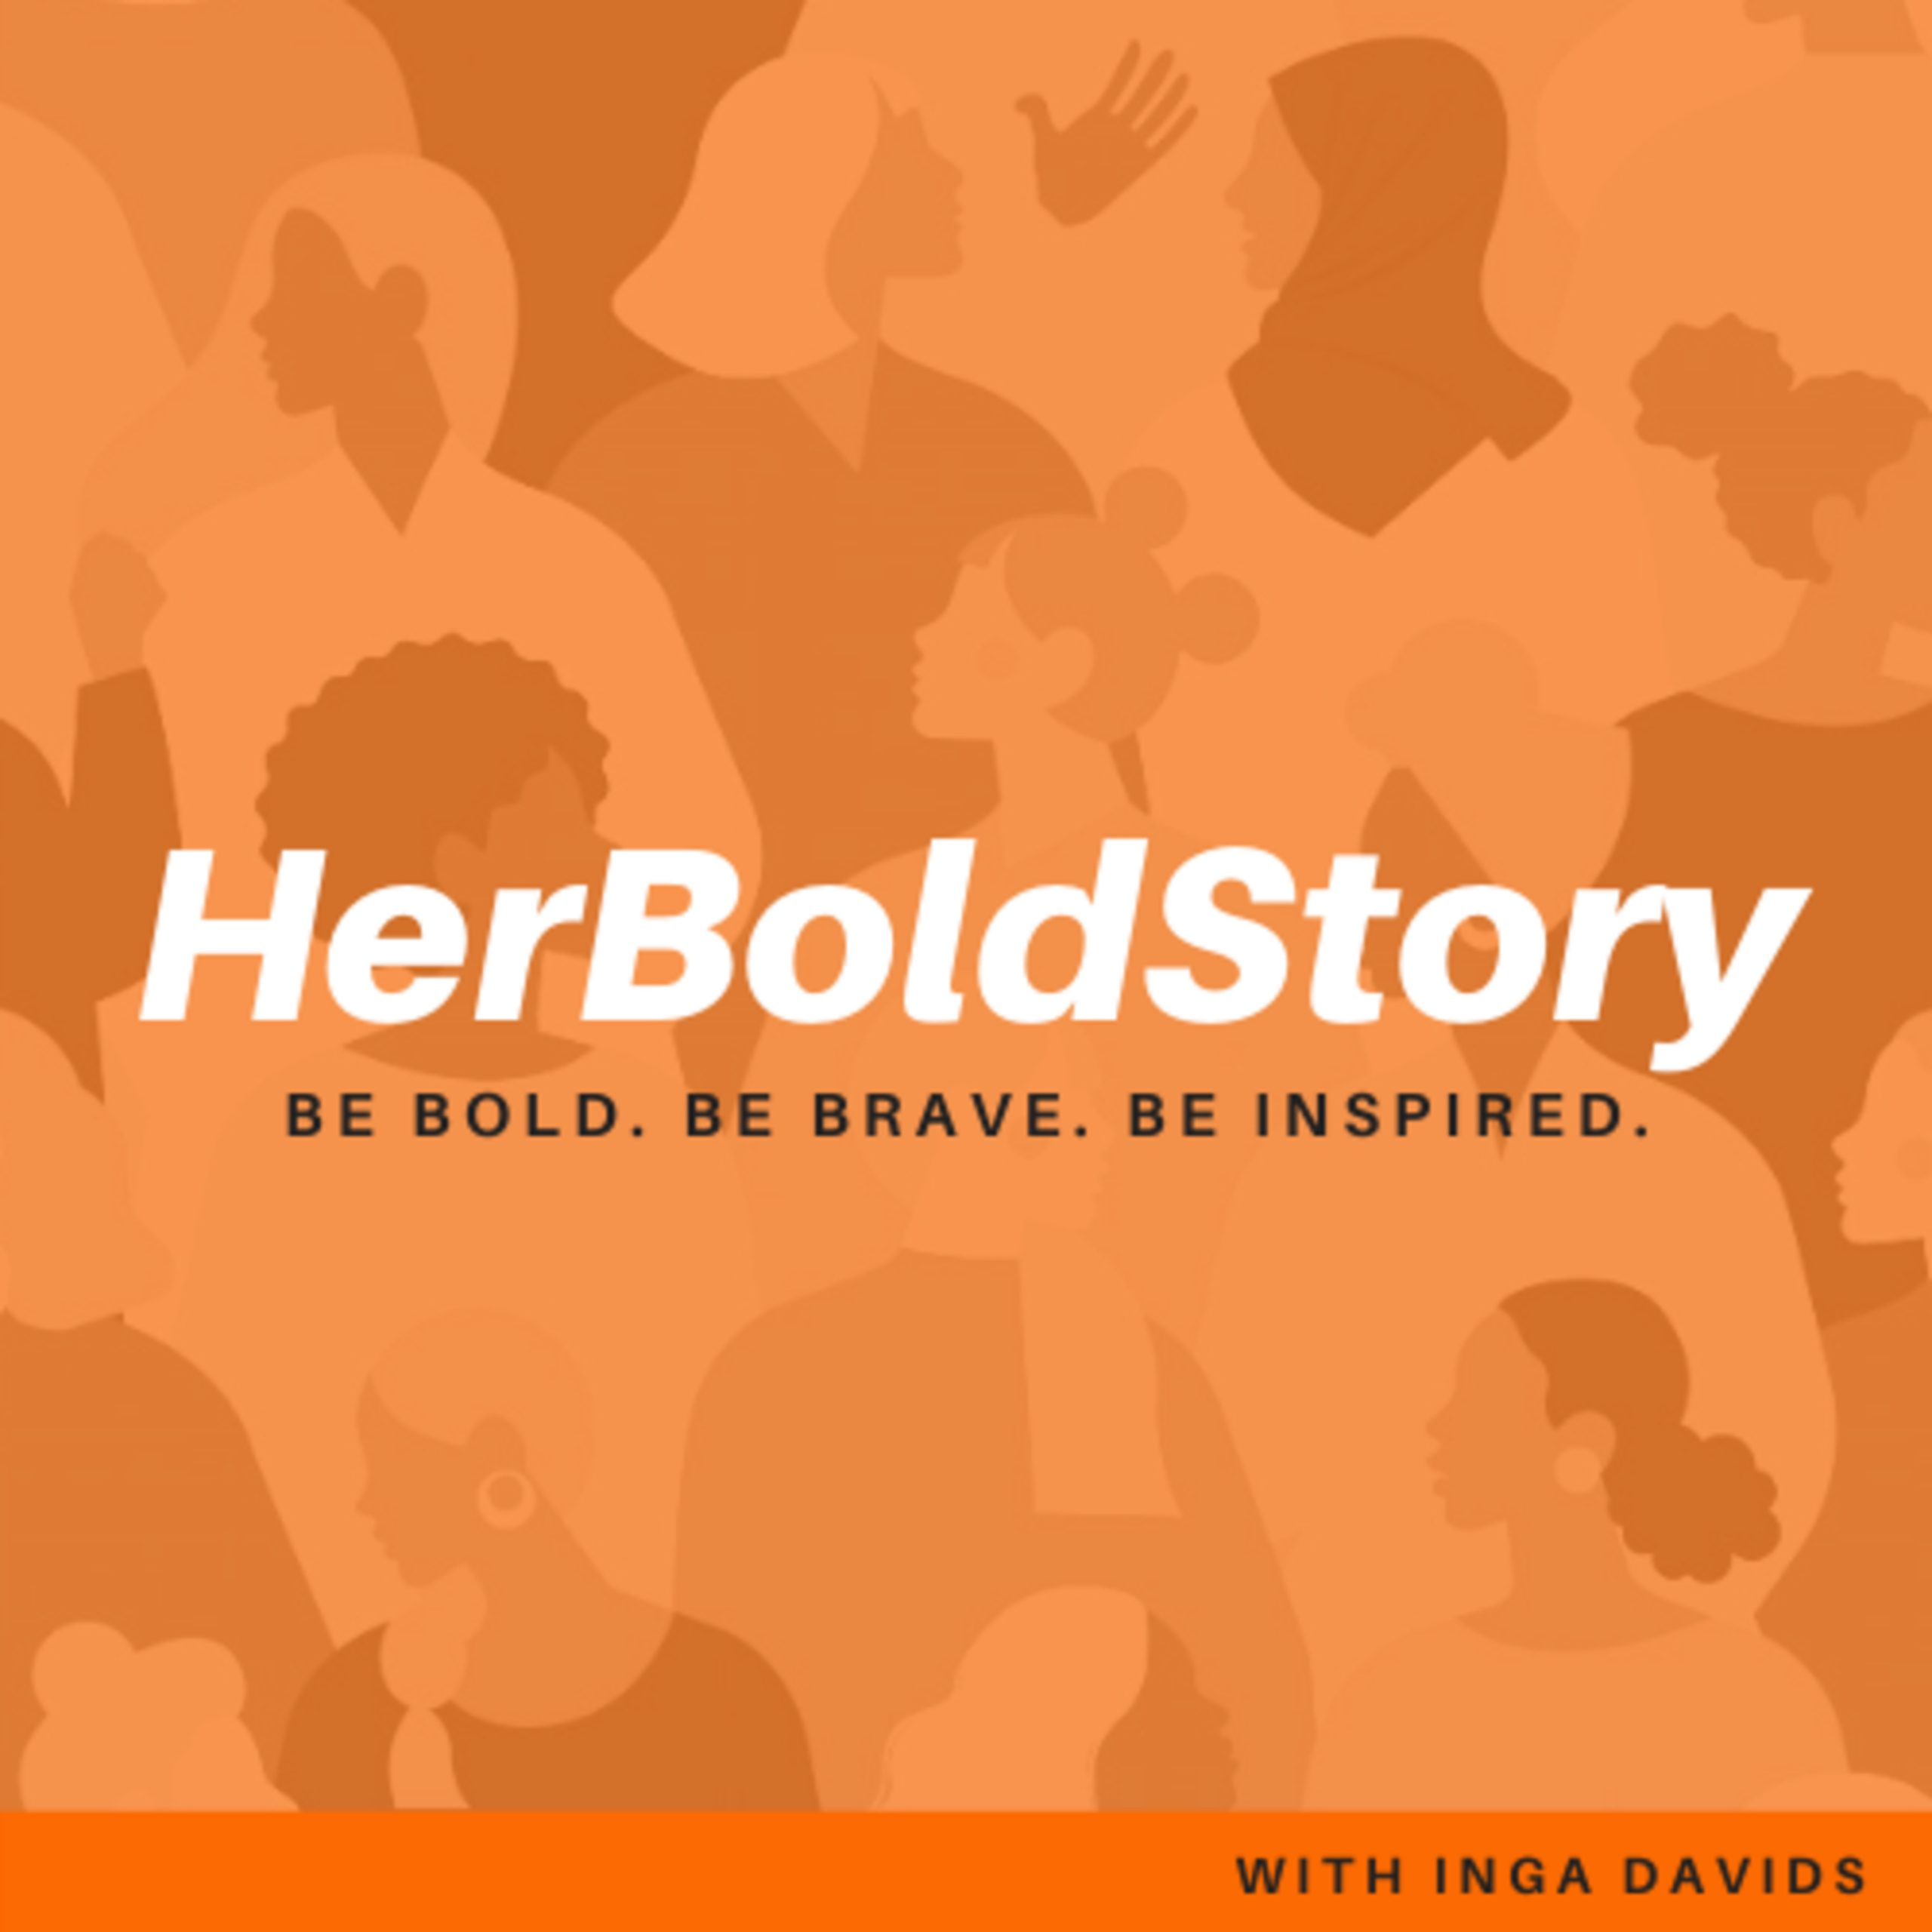 HerBoldStory - Inspiring stories from women in leadership